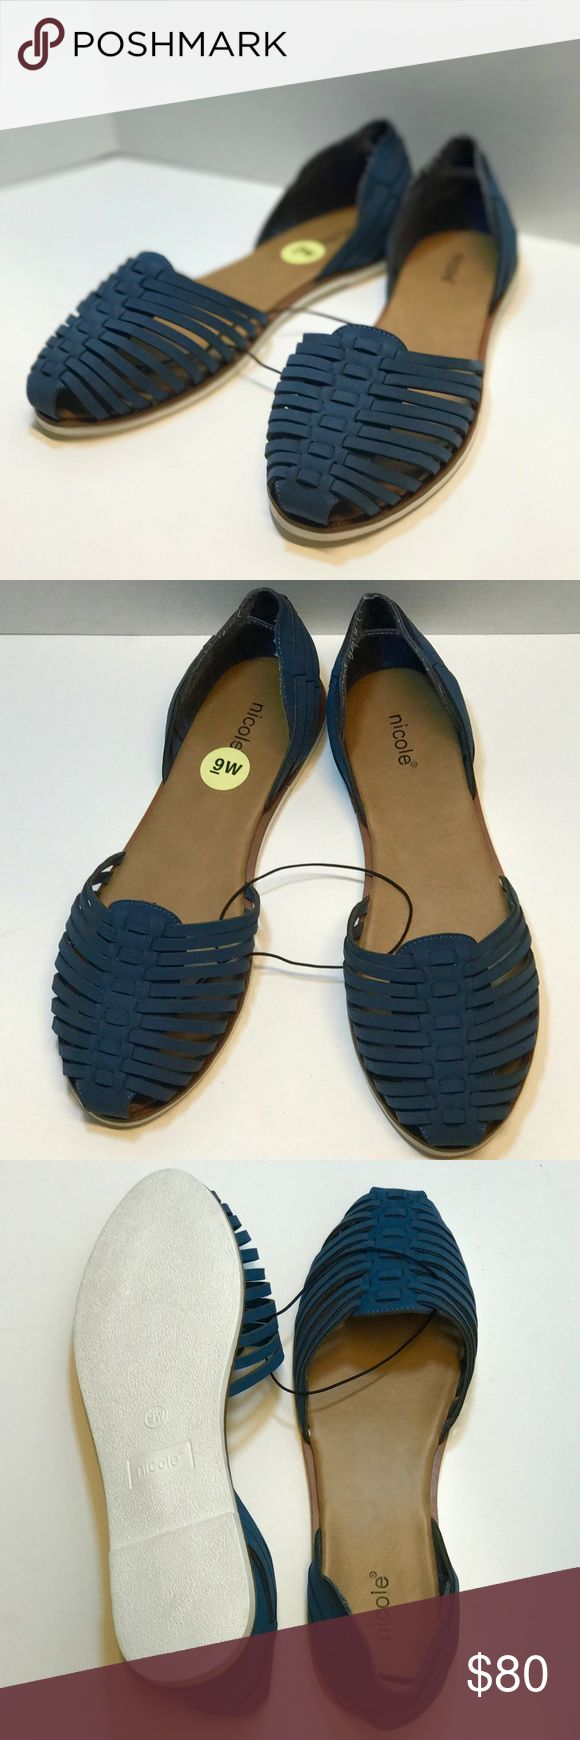 Nicole Suede Blue Flats Super comfy blue espadrilles suede flat sandals. Super cute with a dress or jeans or shorts. Great for summer and spring. The perfect basic! Brand New with Sticker tag, exactly how I got from store. Never been worn. Nicole brand. Size 9W Nicole  Shoes Flats & Loafers